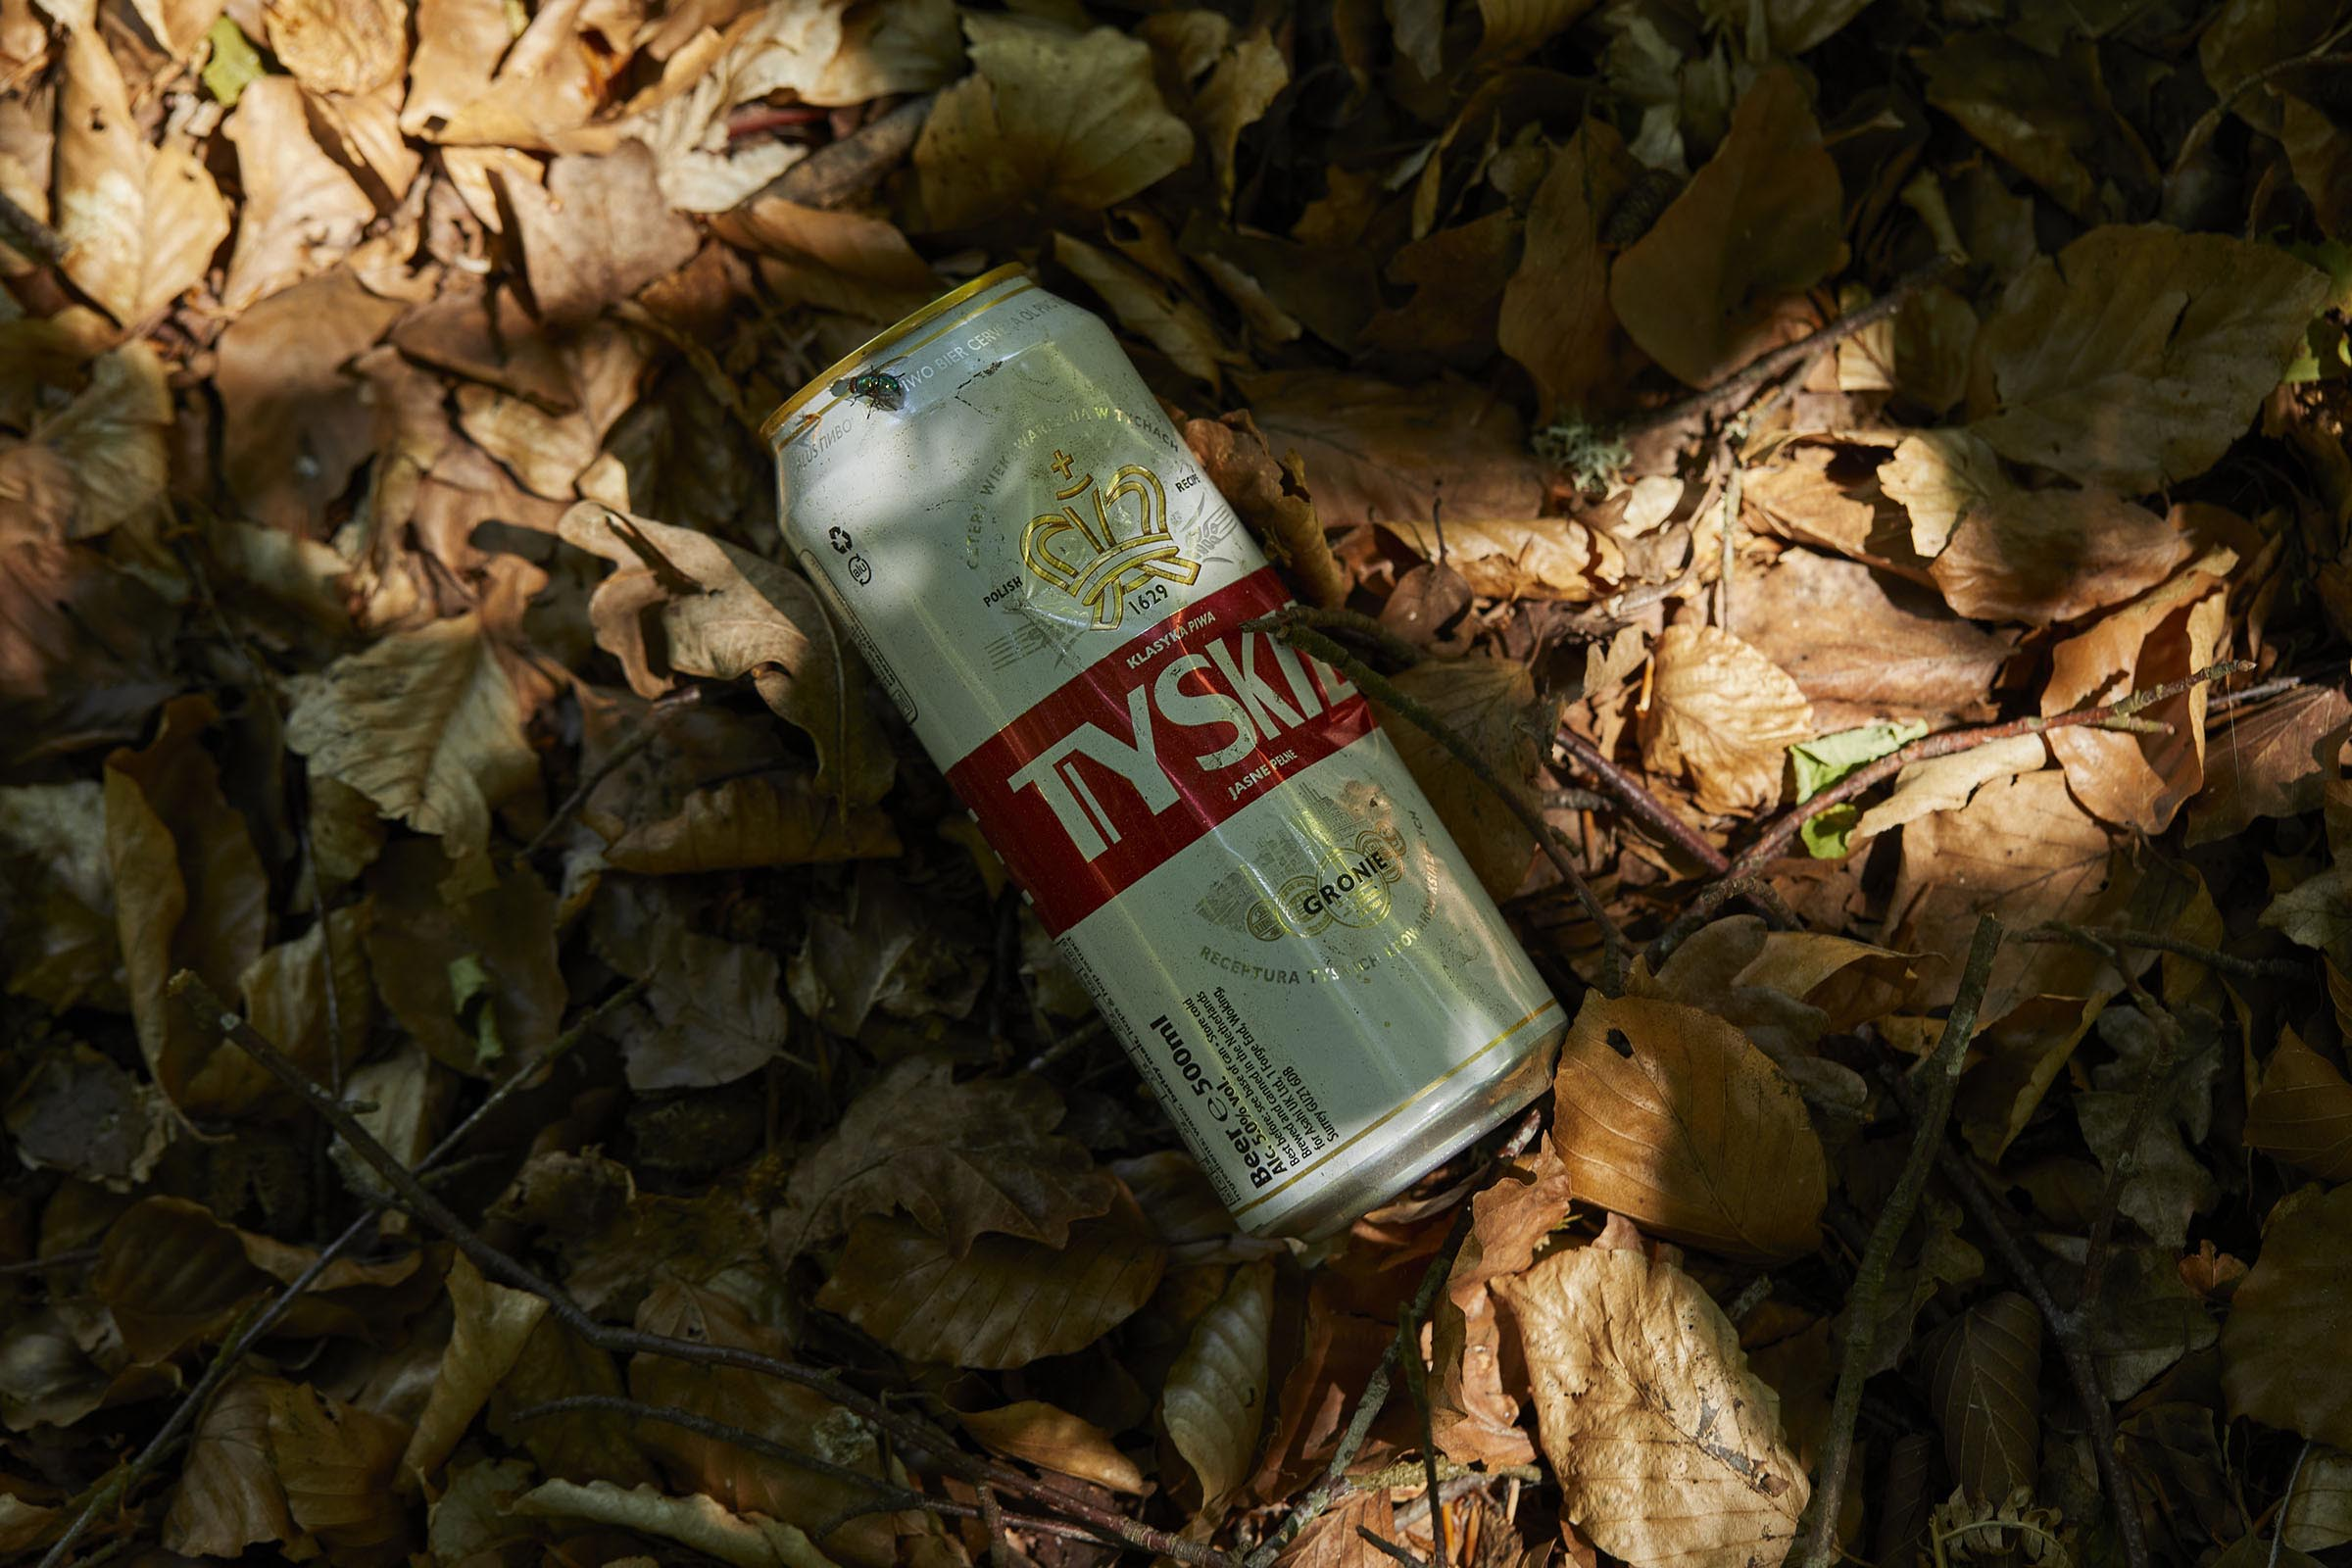 Tyskie beer can on forest floor